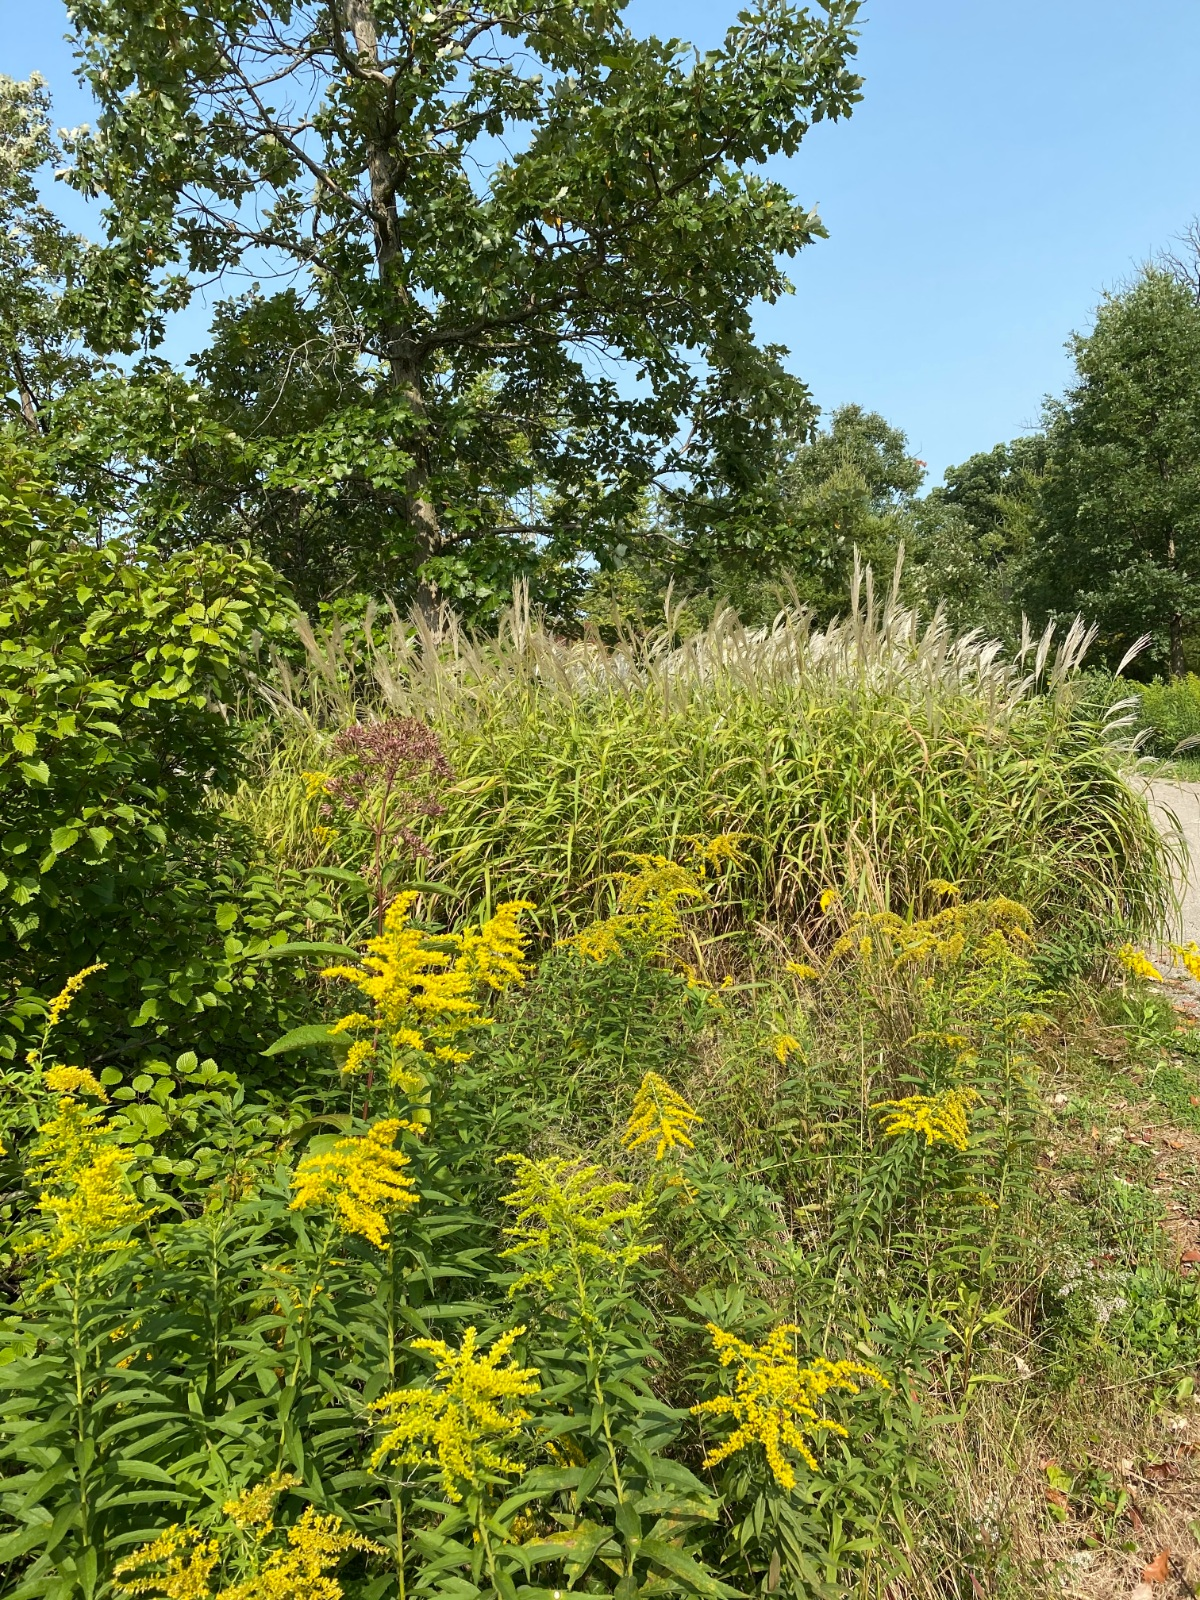 Golden rod in front of flowering grasses